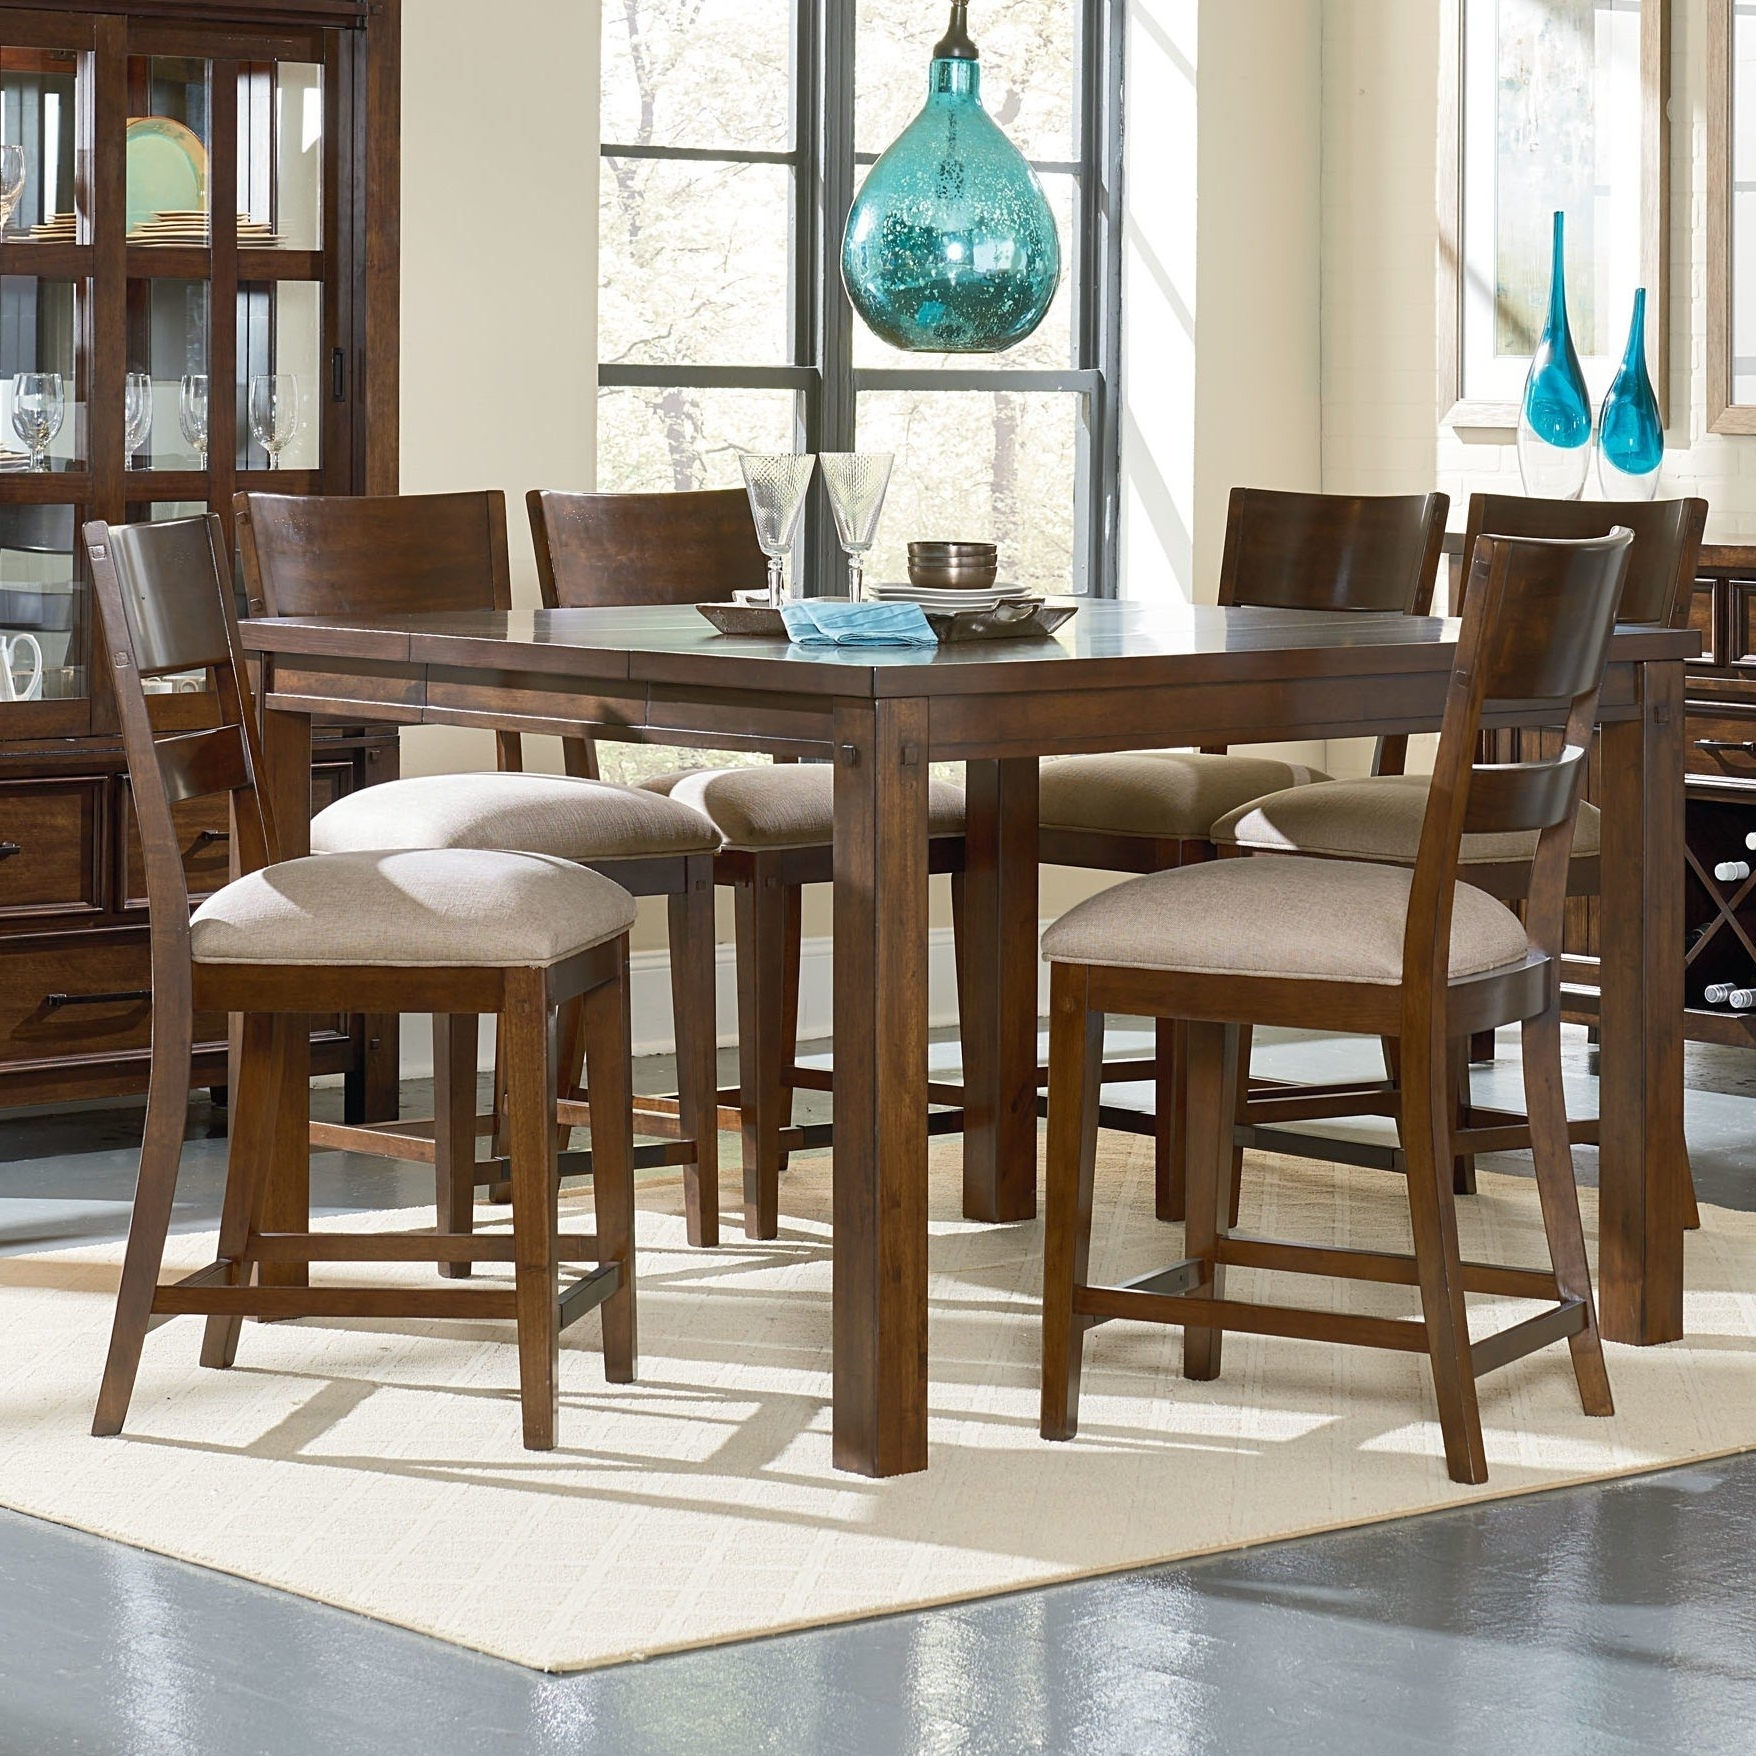 Most Recent Square Dining Table For 6 – Visual Hunt Regarding Parquet 6 Piece Dining Sets (View 2 of 25)